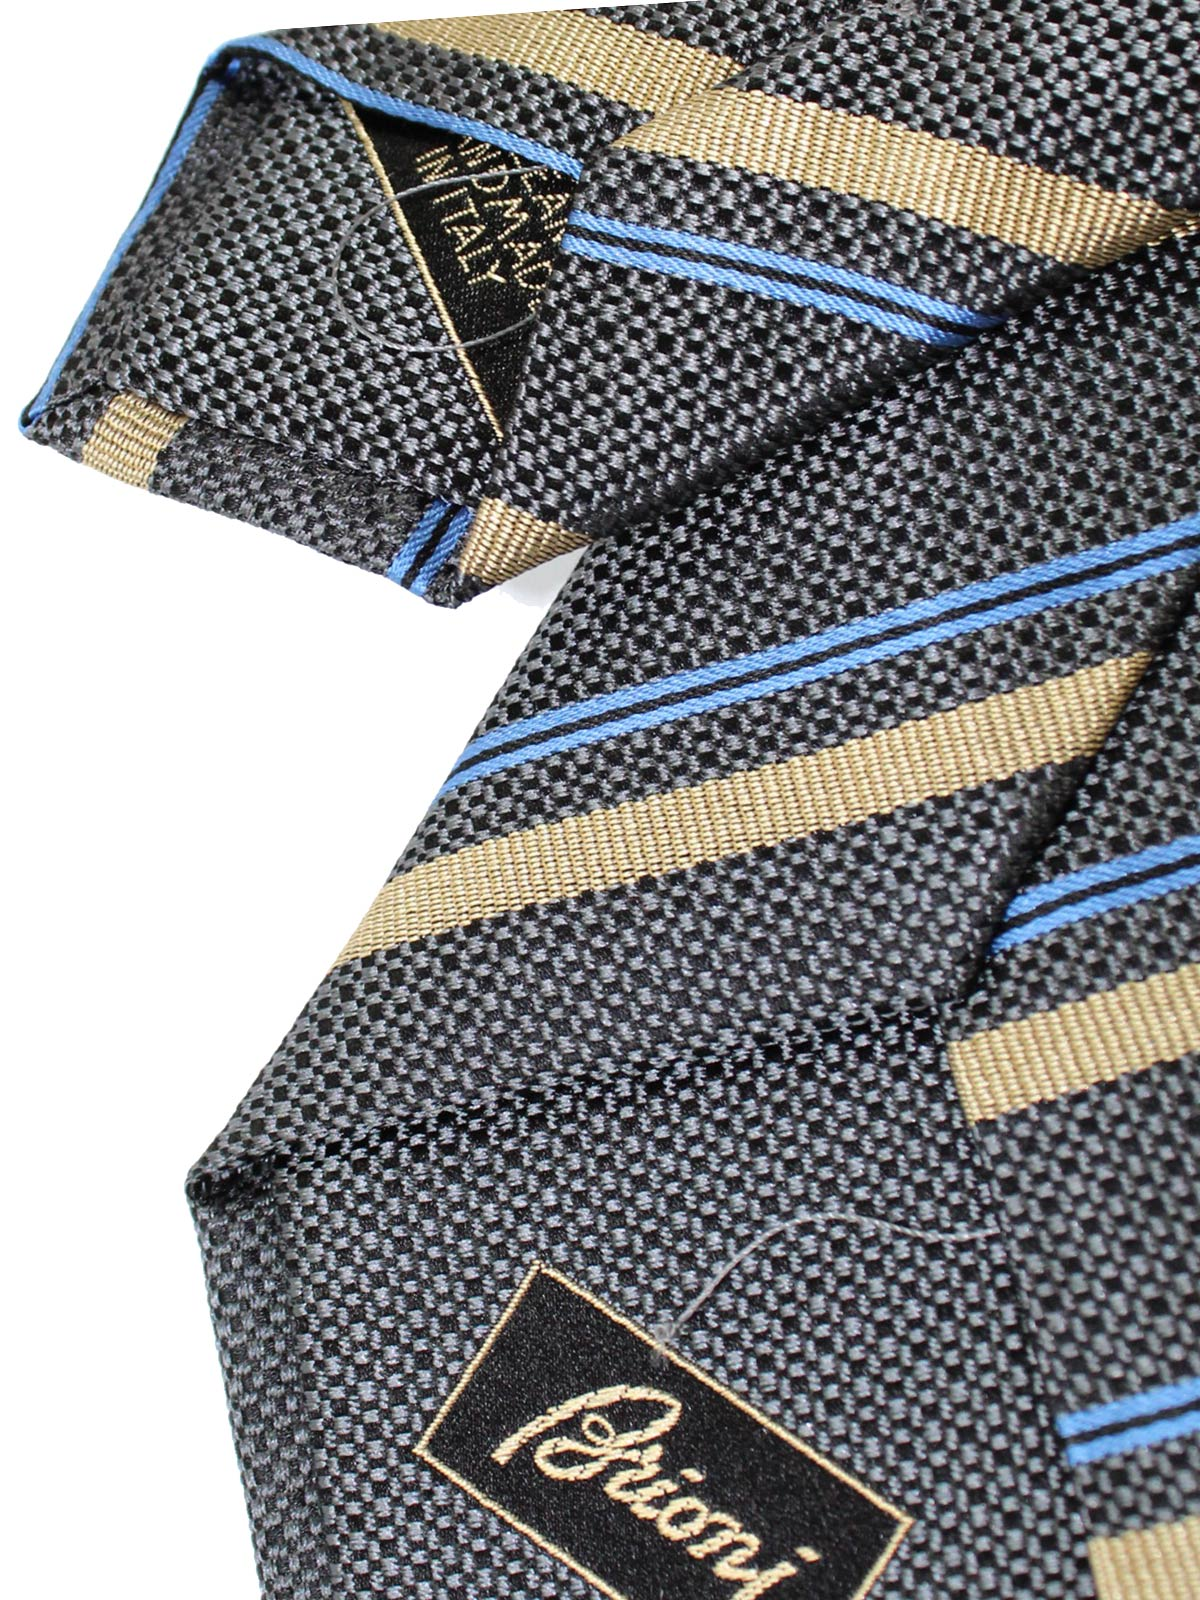 Brioni Tie Gray Taupe Royal Blue